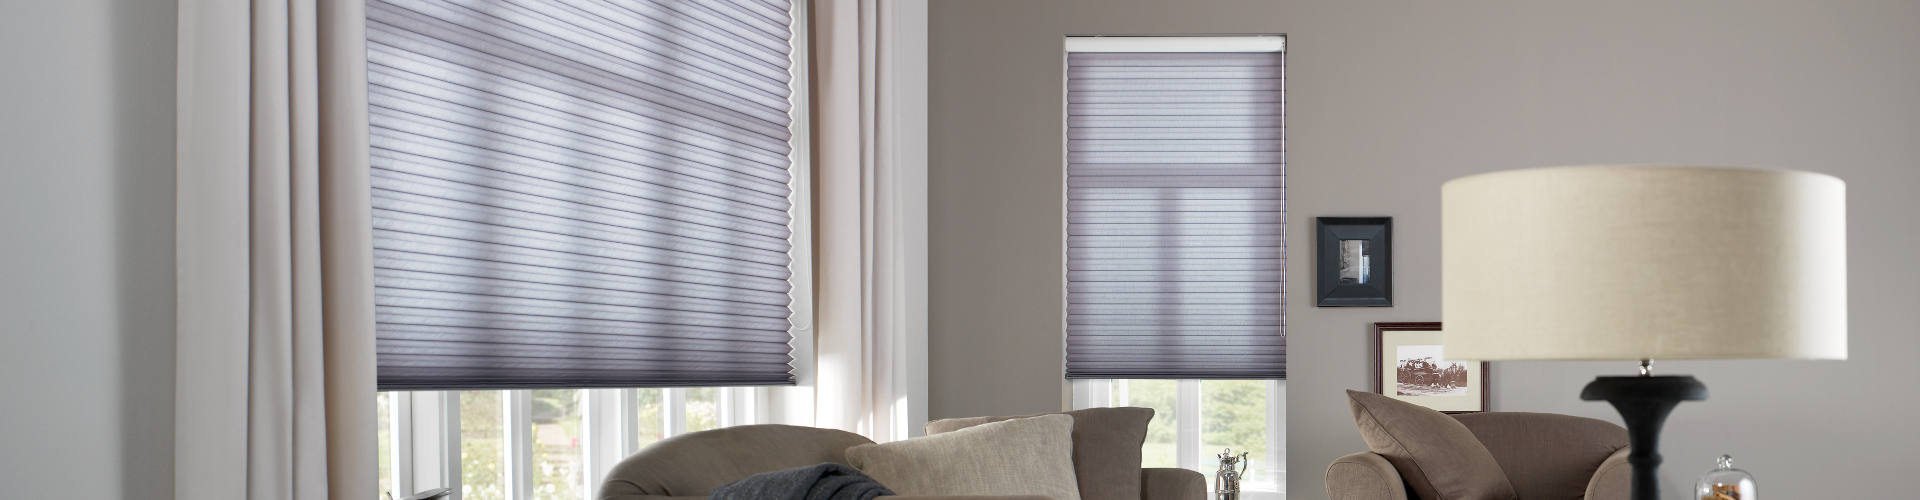 Electric Pleated Blinds Header Image